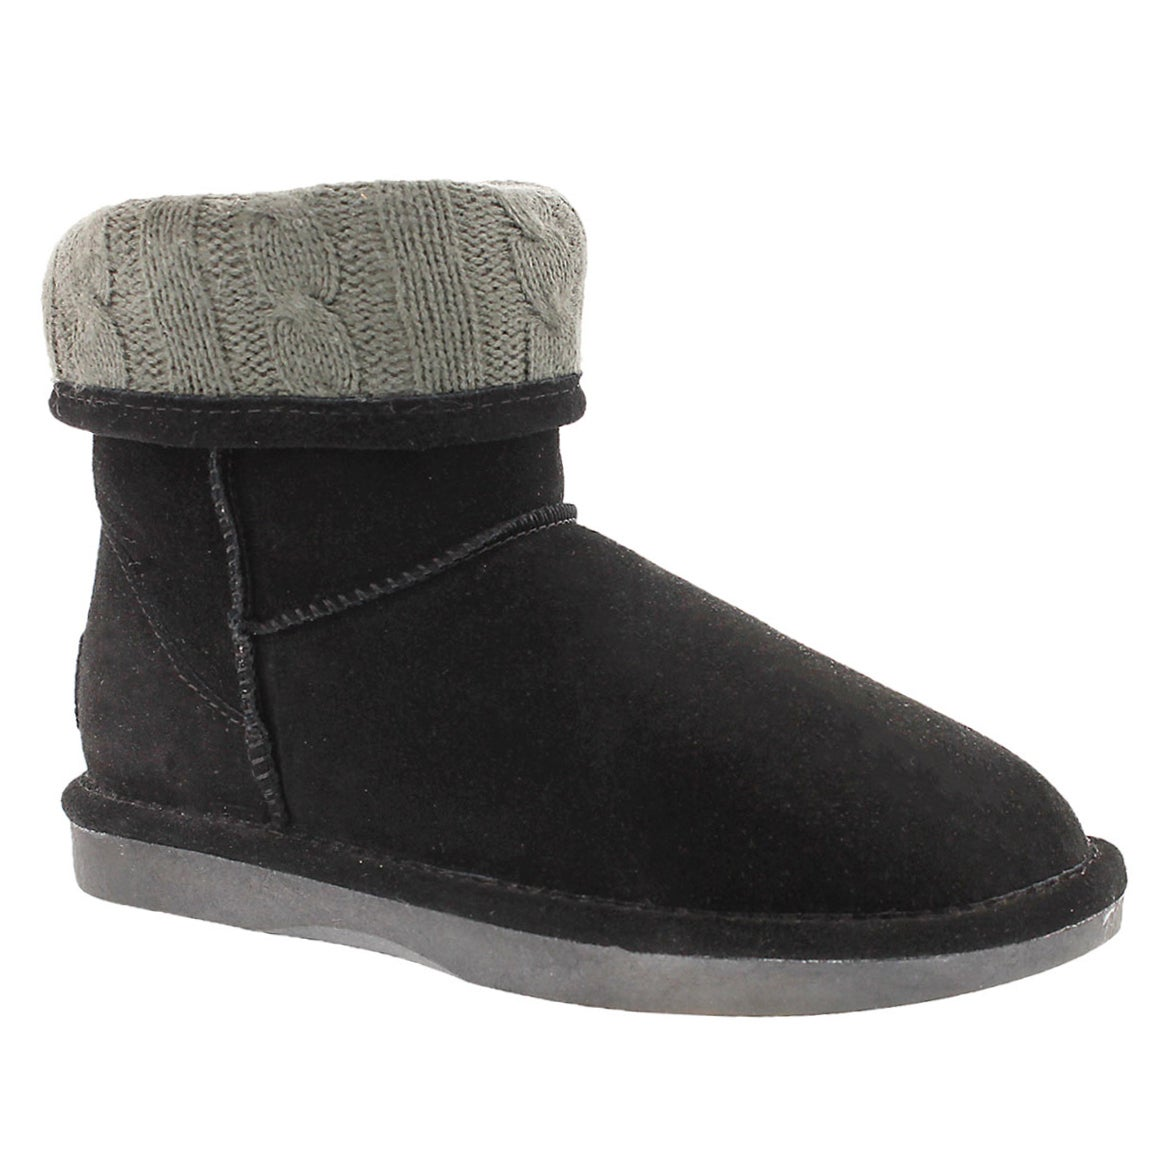 Lds Smocs Cuff black suede boot